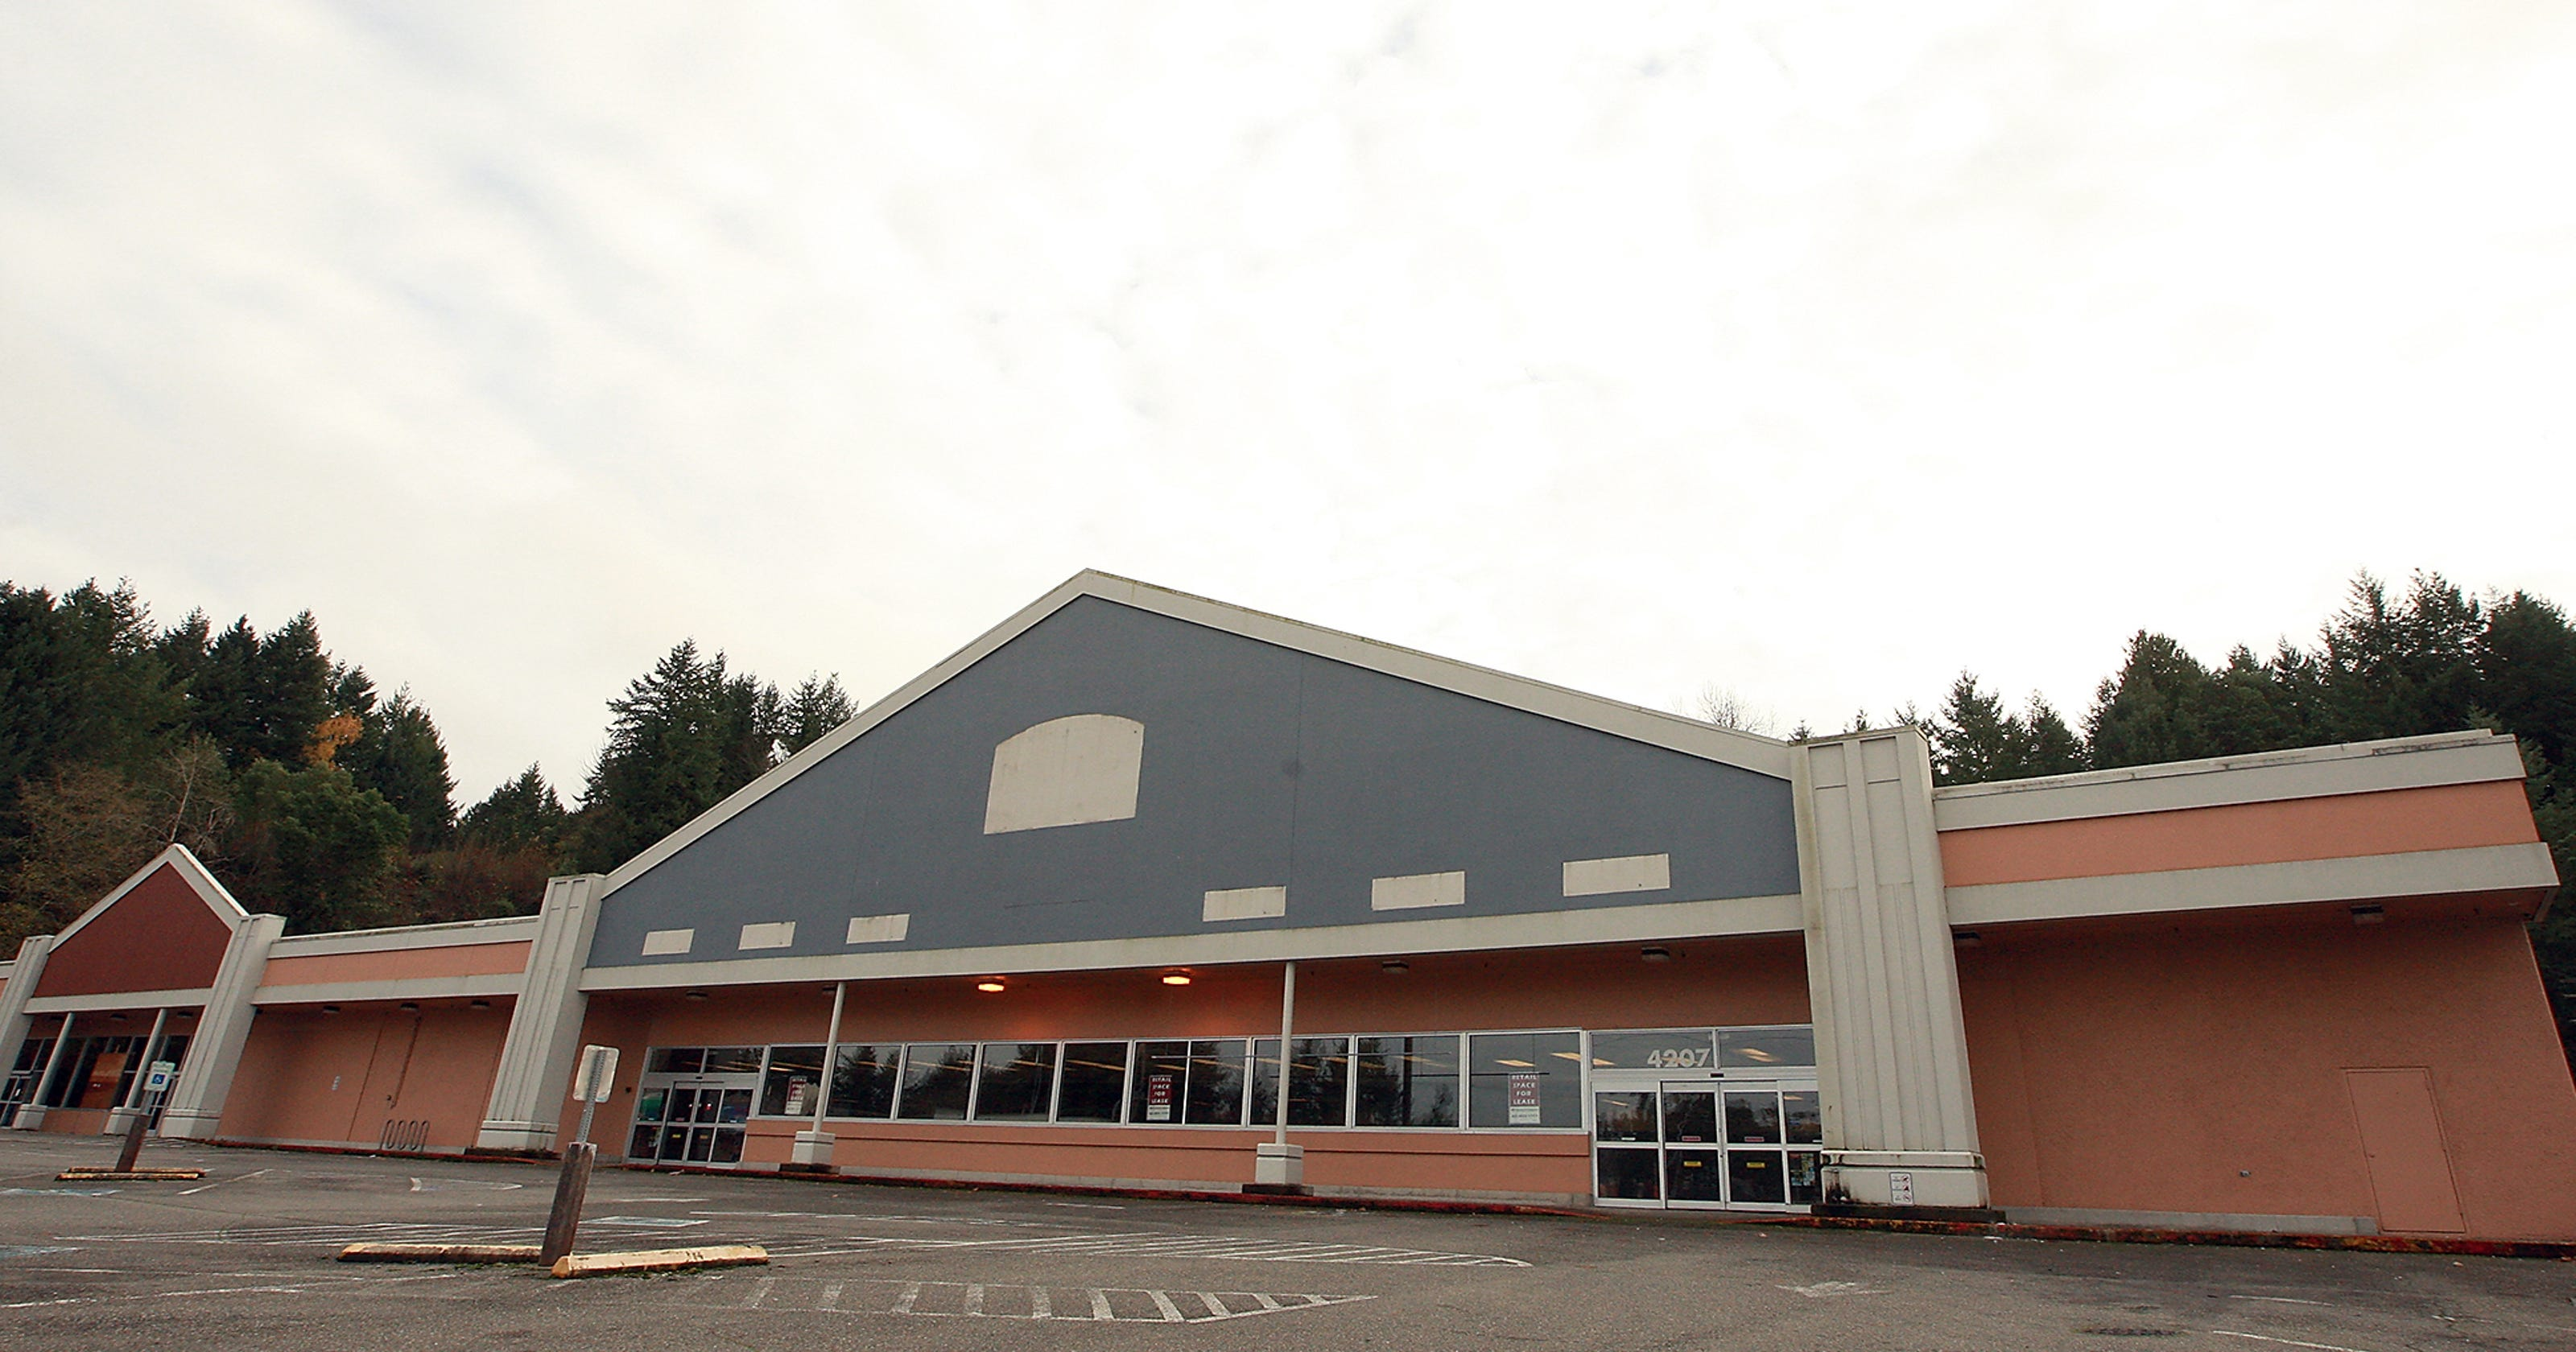 CHI Franciscan plans clinic in former Bremerton QFC